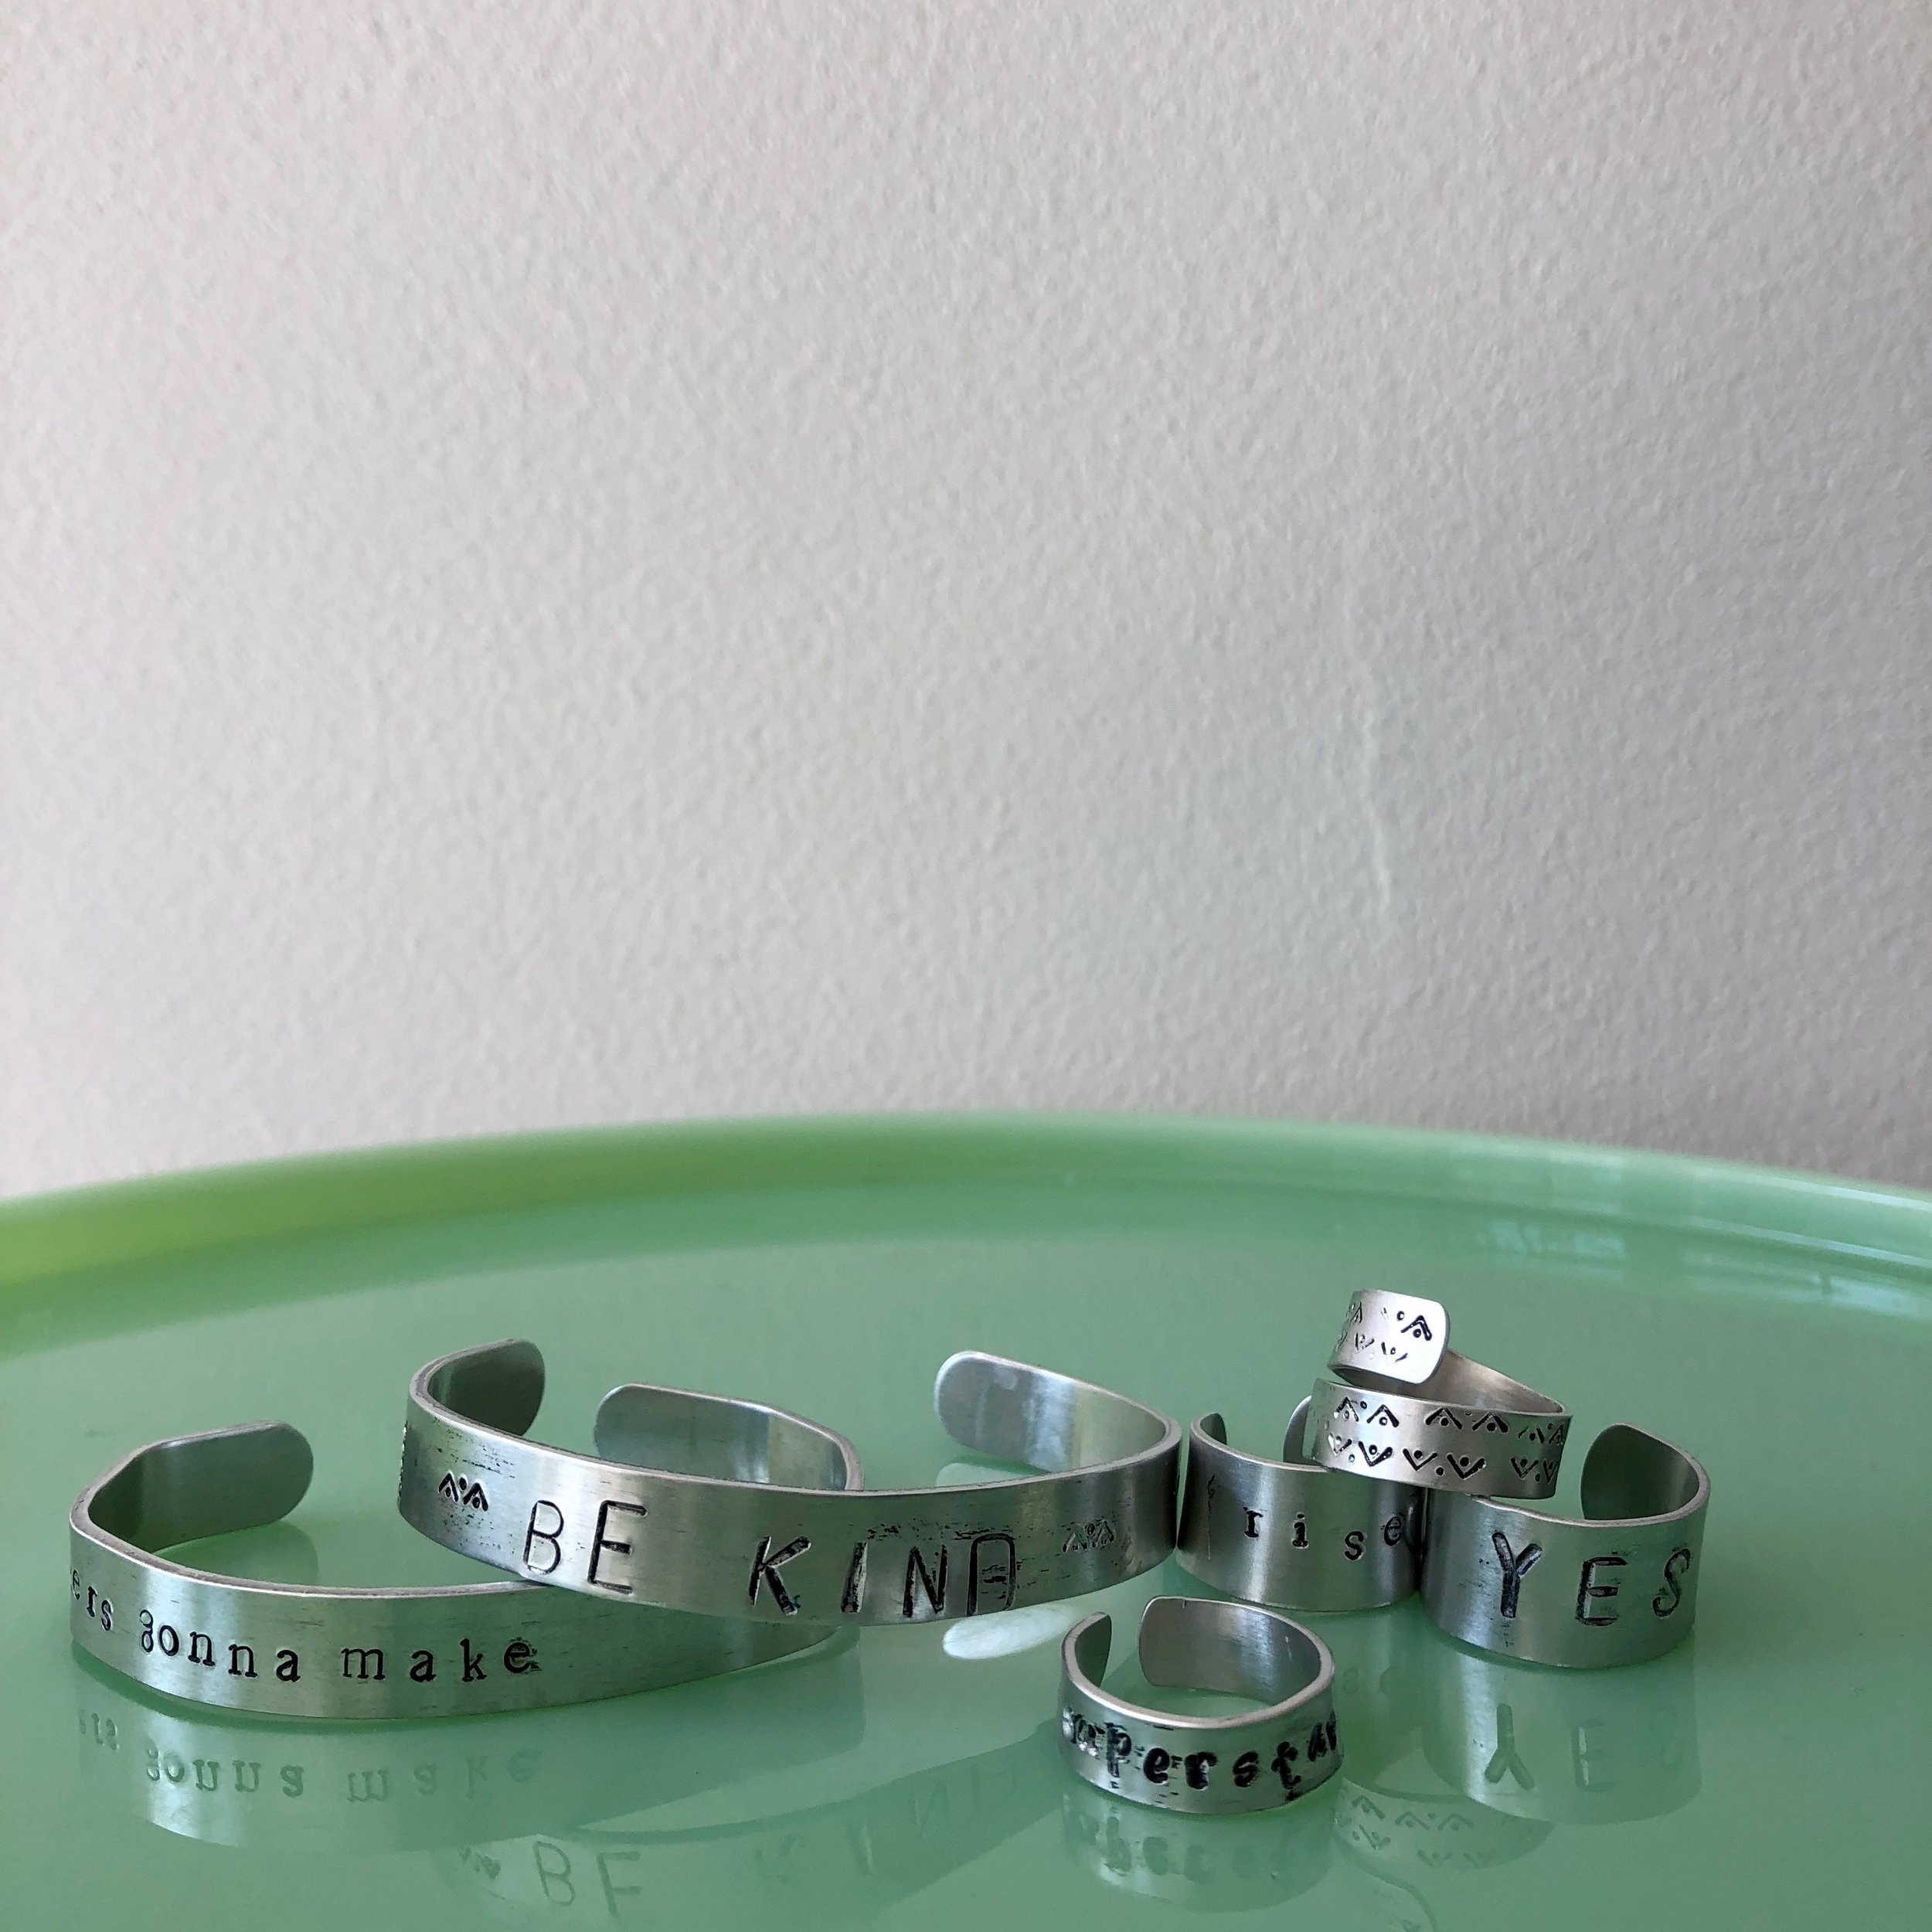 Stamped Metal Jewelry  - make personalized metal jewelry. Your choice of 3 items. Choose from bracelets, rings or charms.